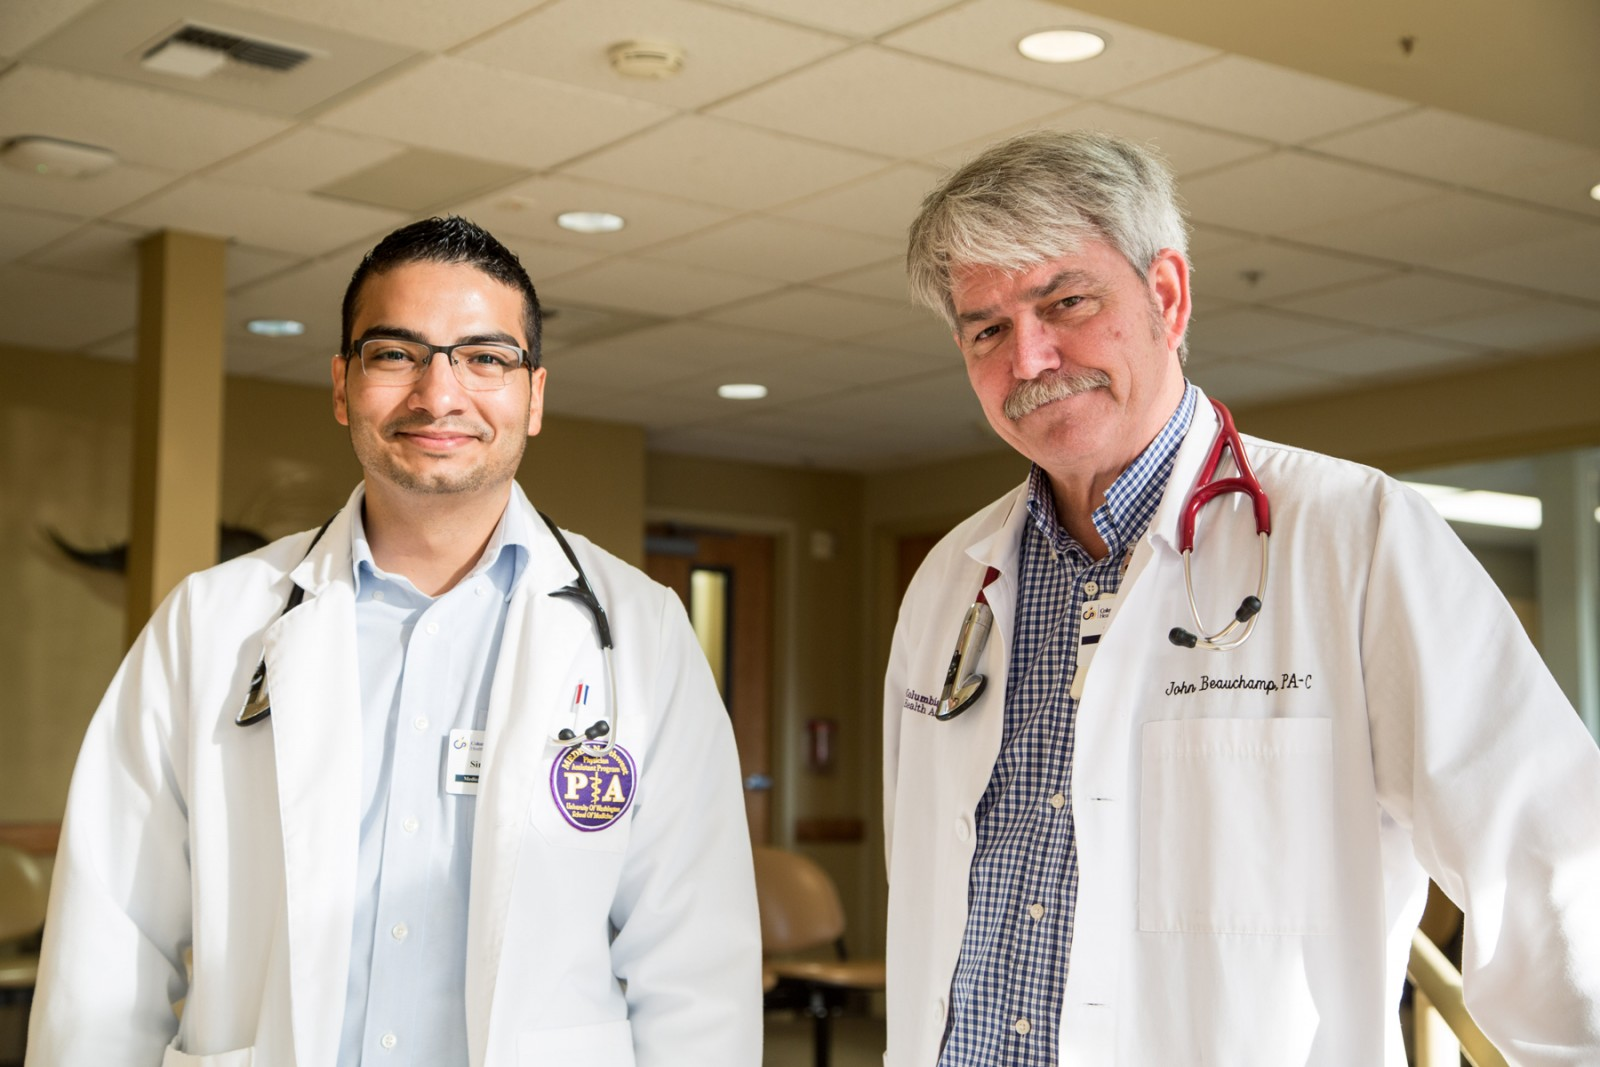 Simon Mendoza is seen here during his family medicine preceptorship at Othello Family Clinic with John Beauchamp, PA-C.